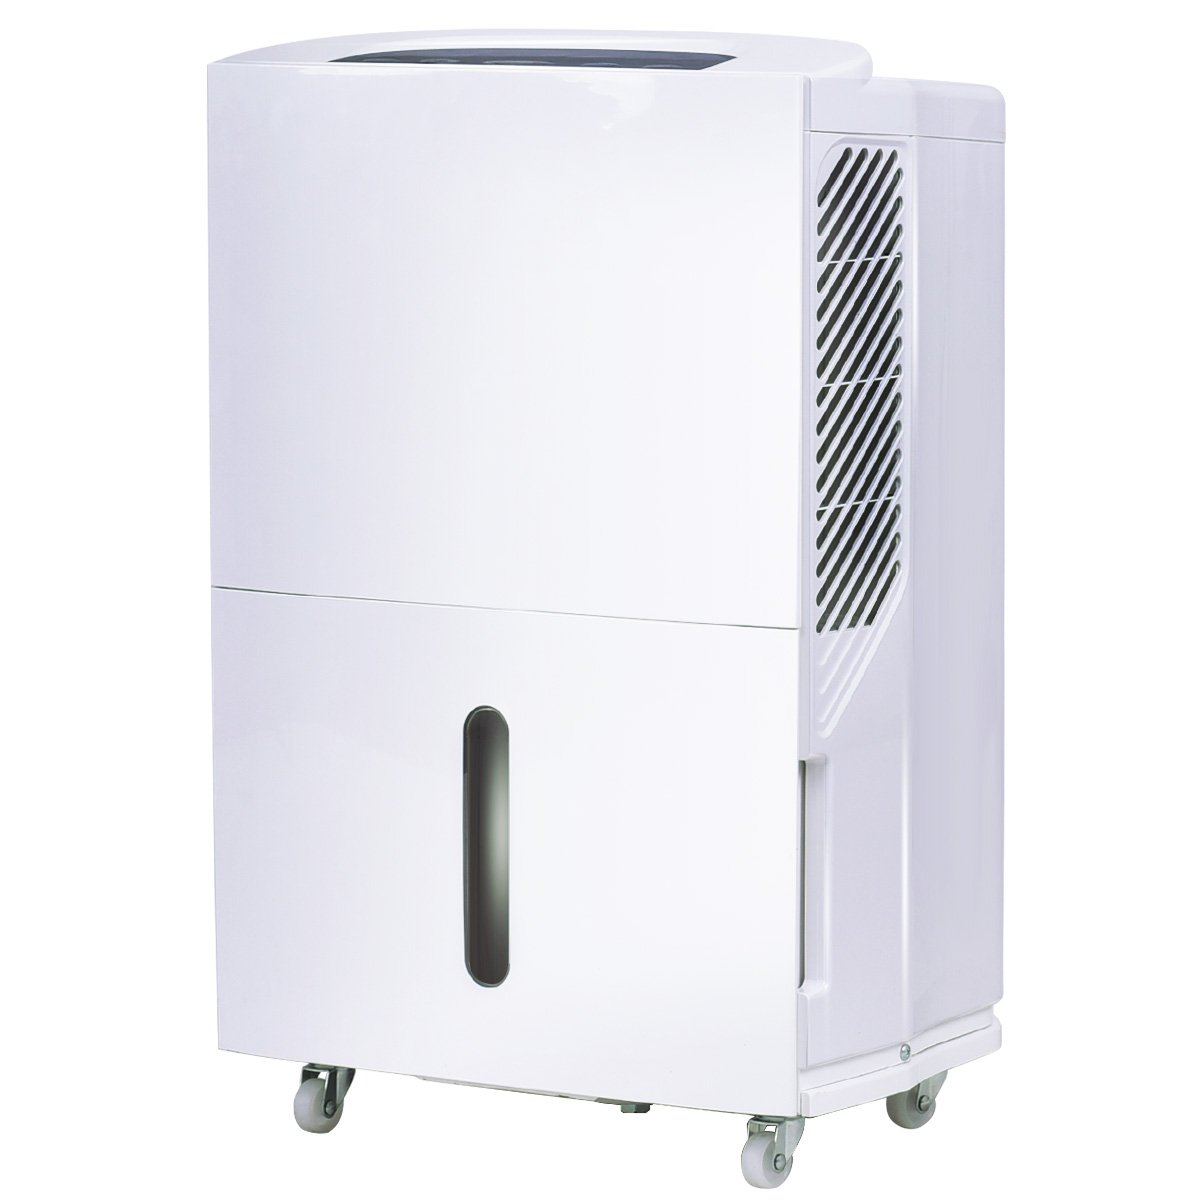 Costway Portable Energy Star Dehumidifier for Basement or Large Room Electric Dehumidifier Machine Safe Humidity Control Timer w/ Washable Air Filter (70-pint)